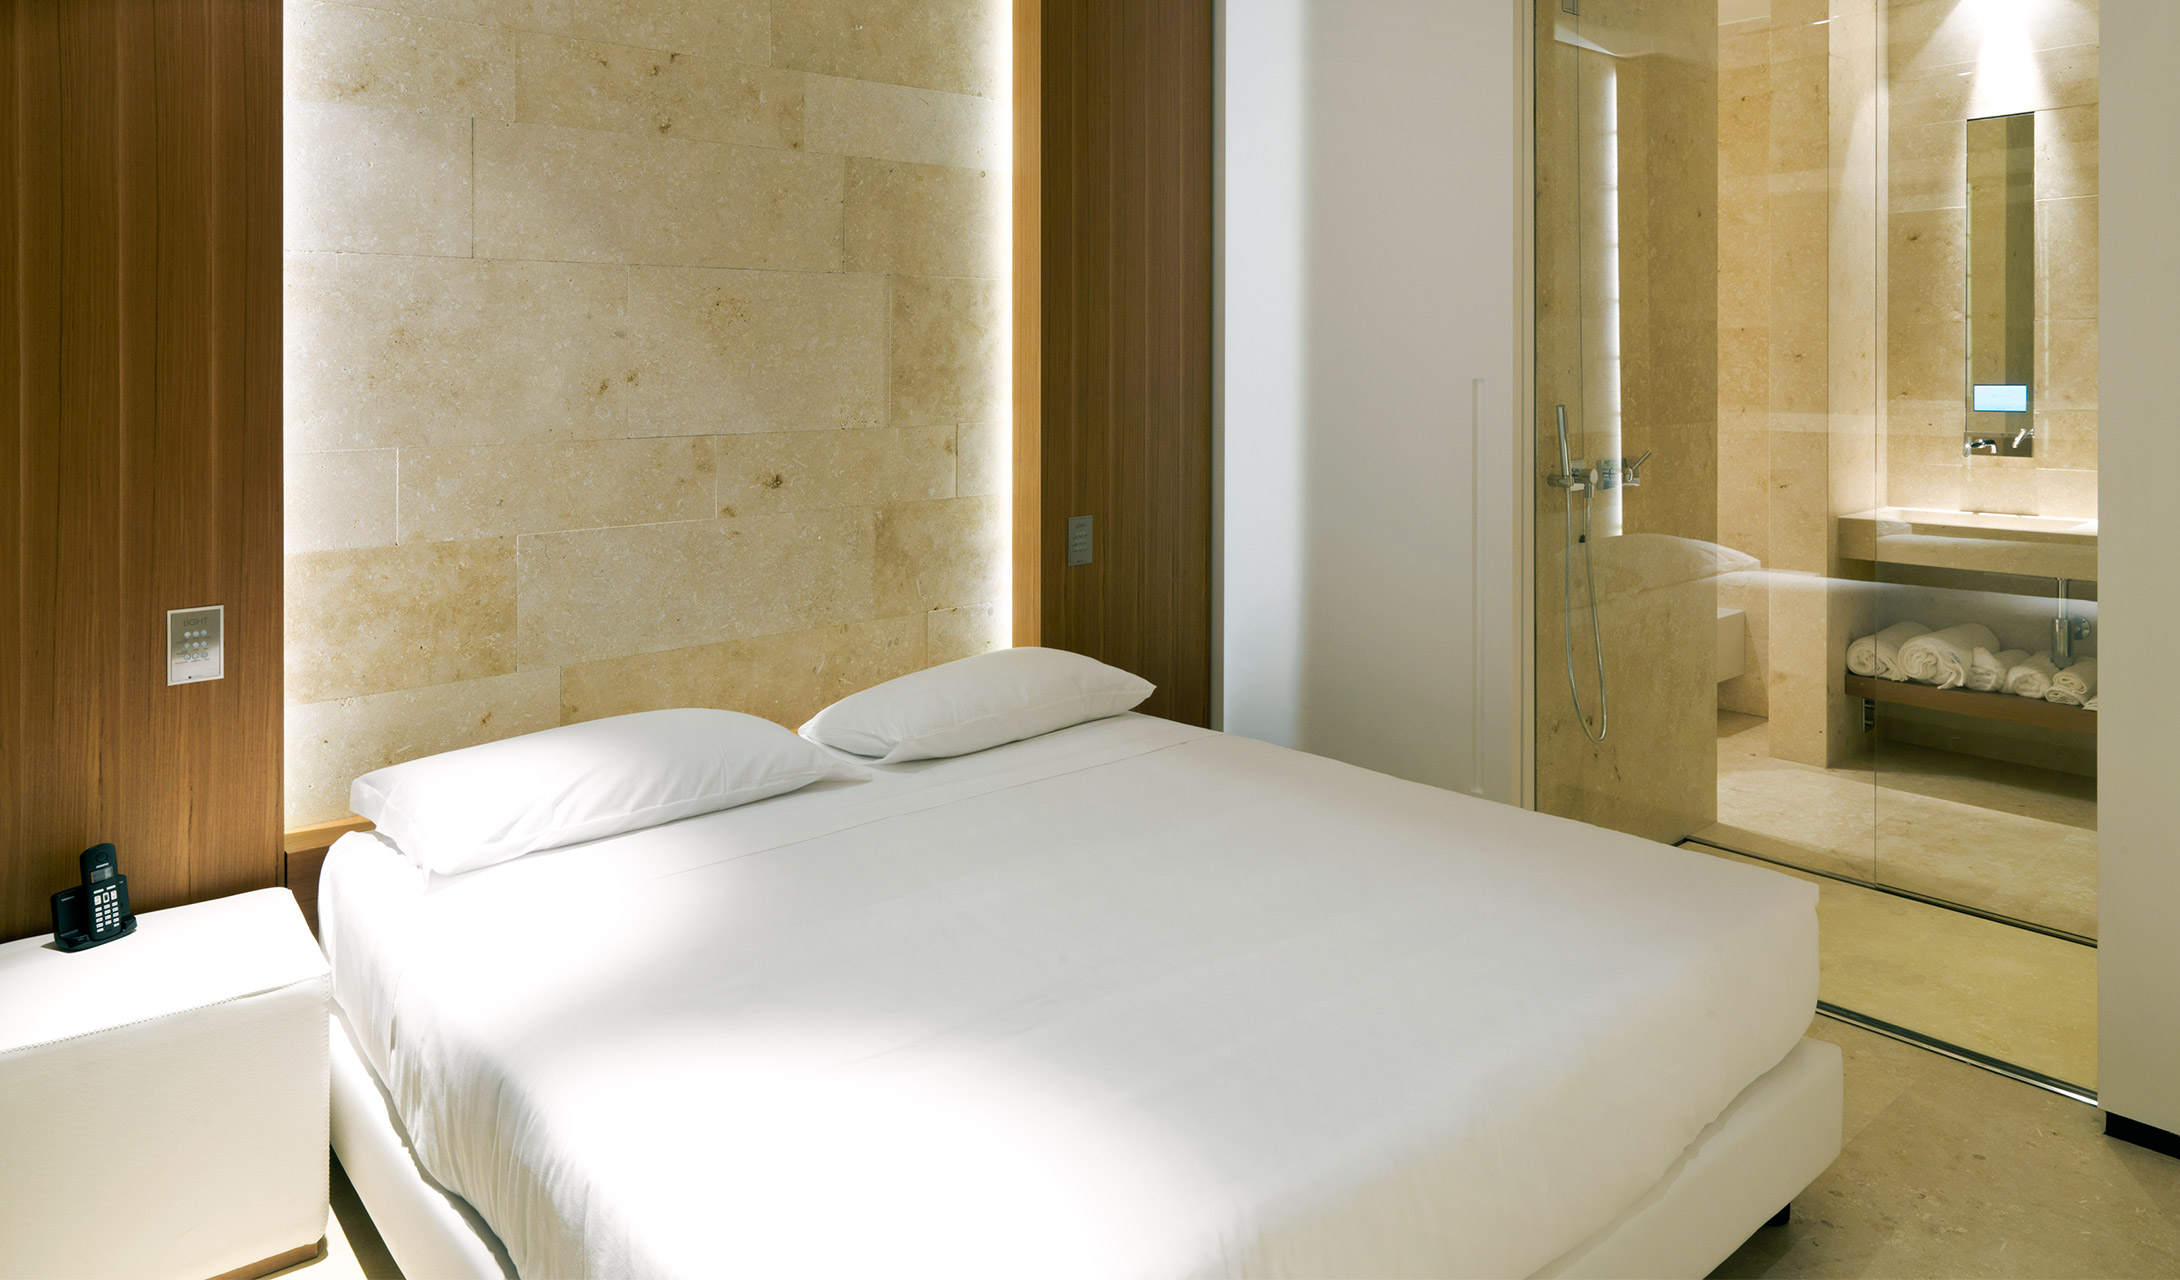 C hotel spa cassago brianza italy design hotels for Hotel spa design